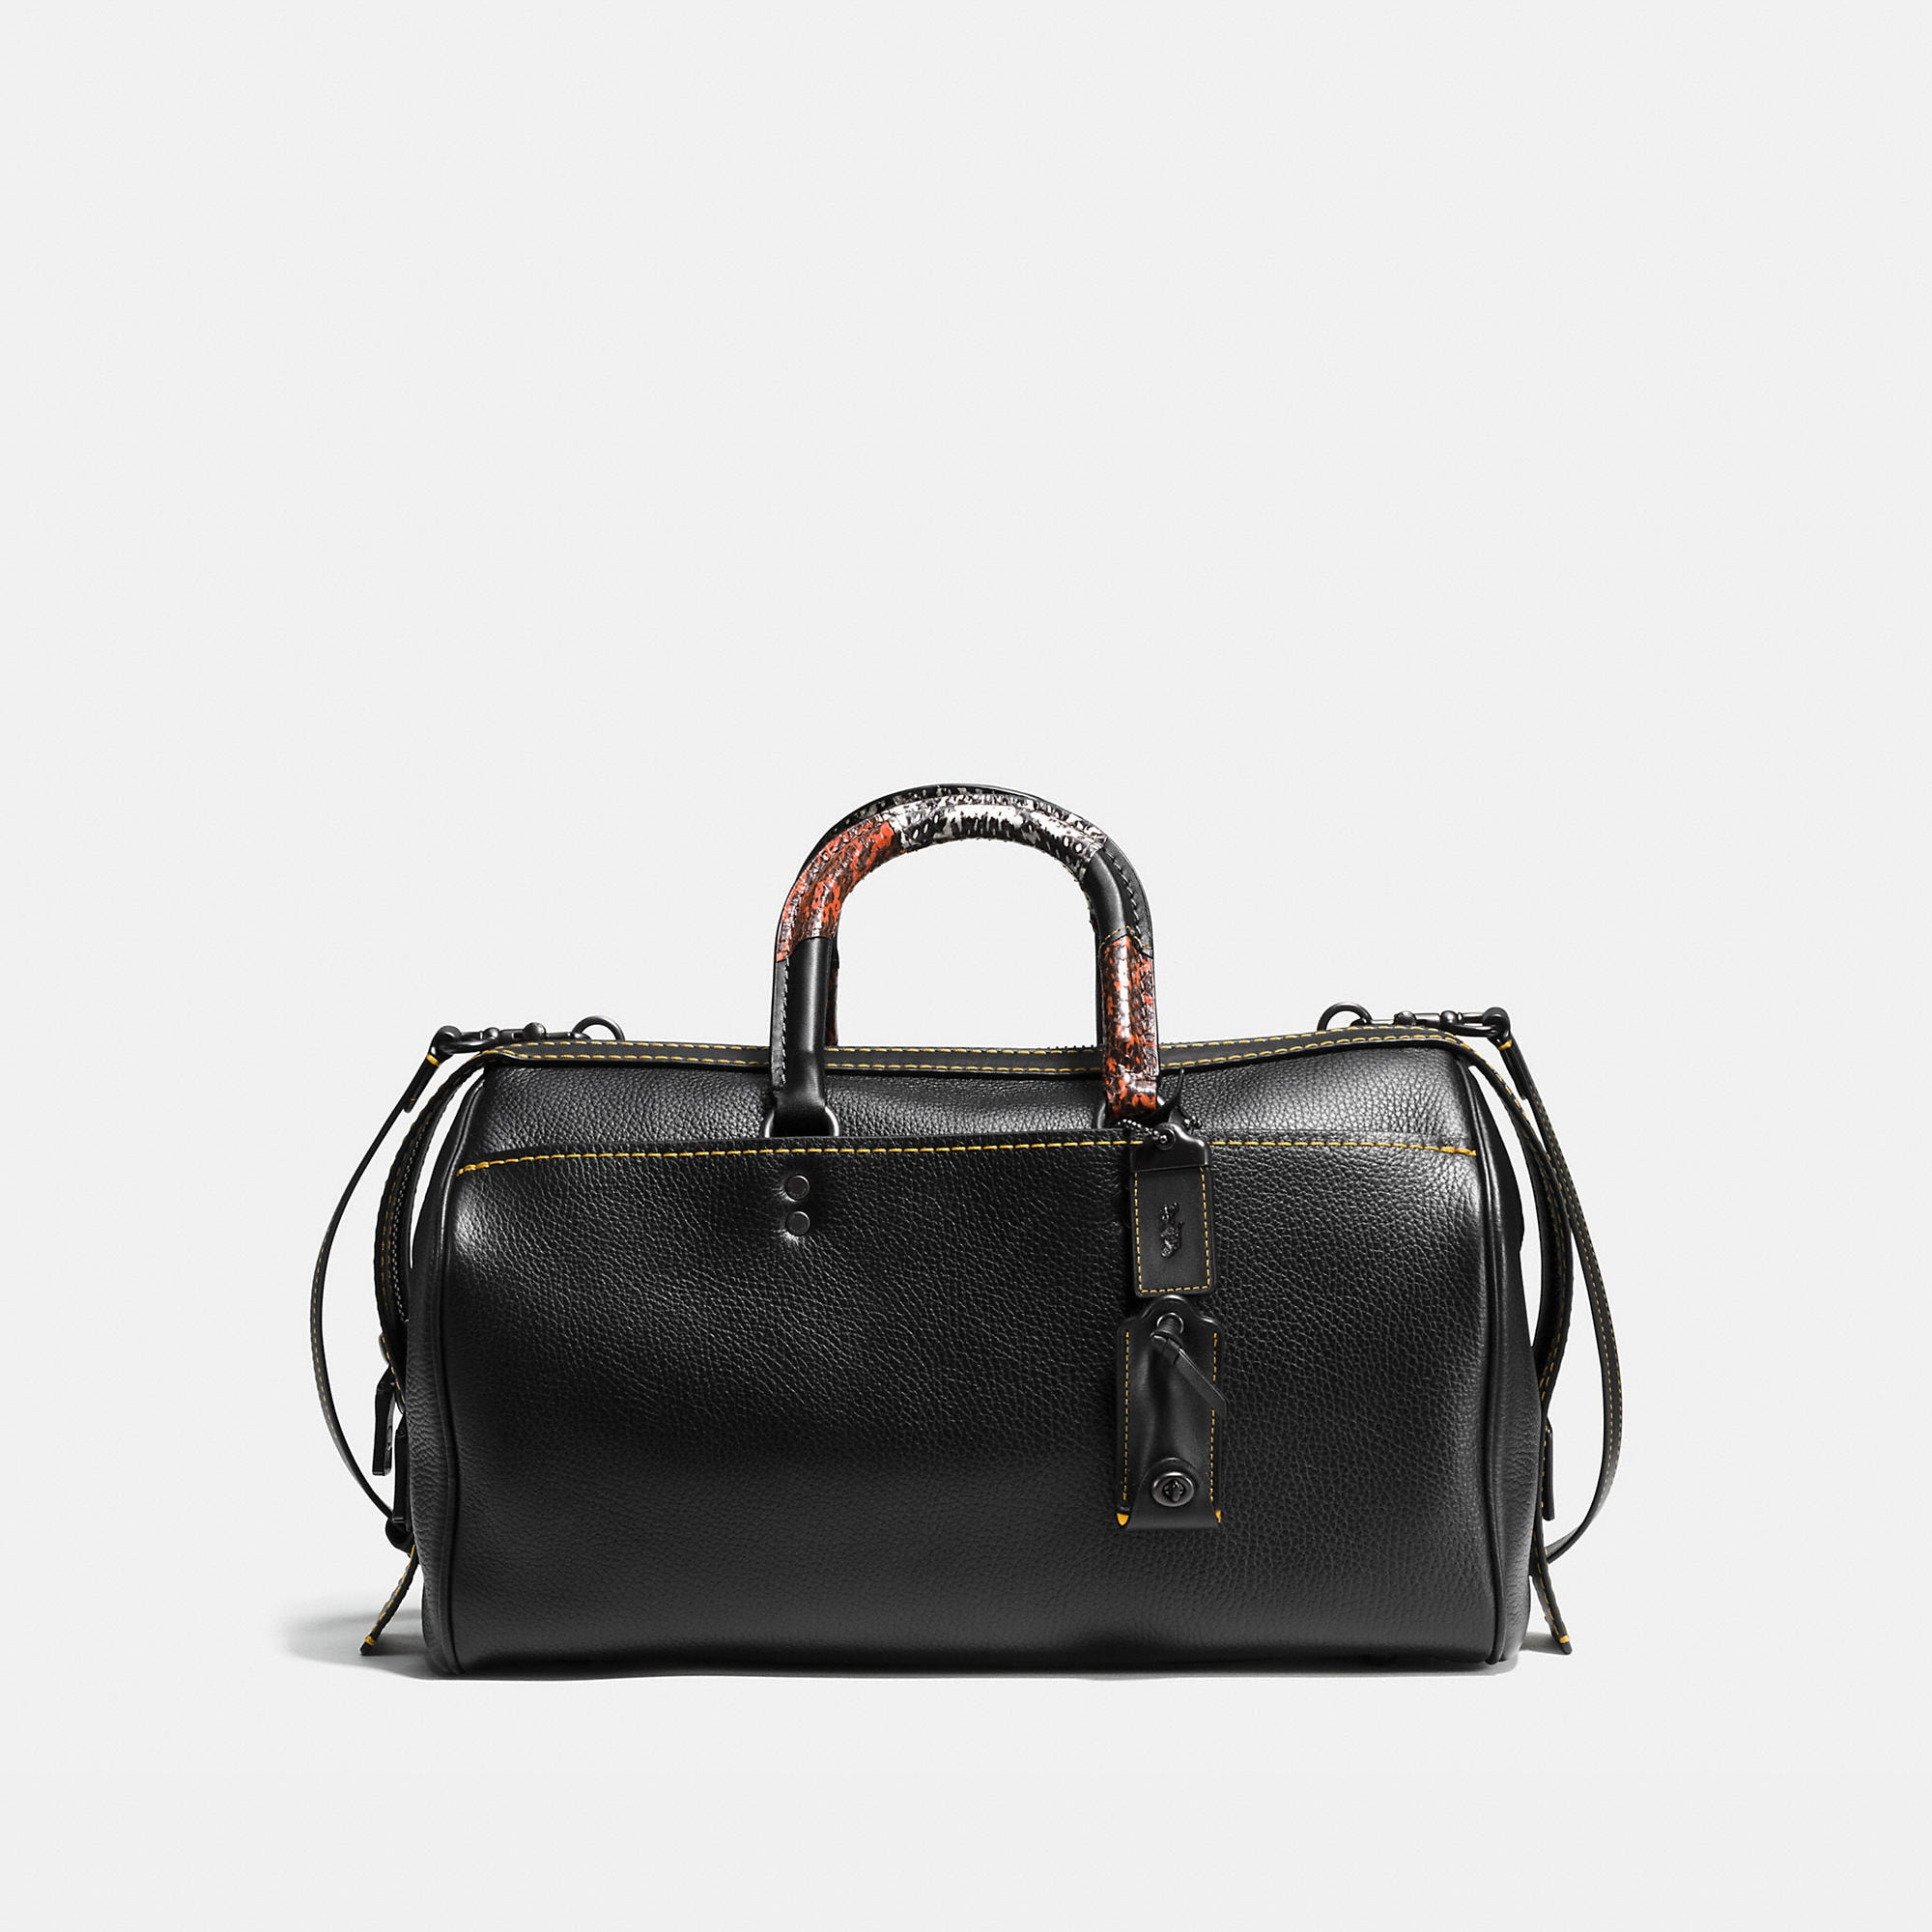 Coach Rogue Satchel 36 With Patchwork Snake Handle